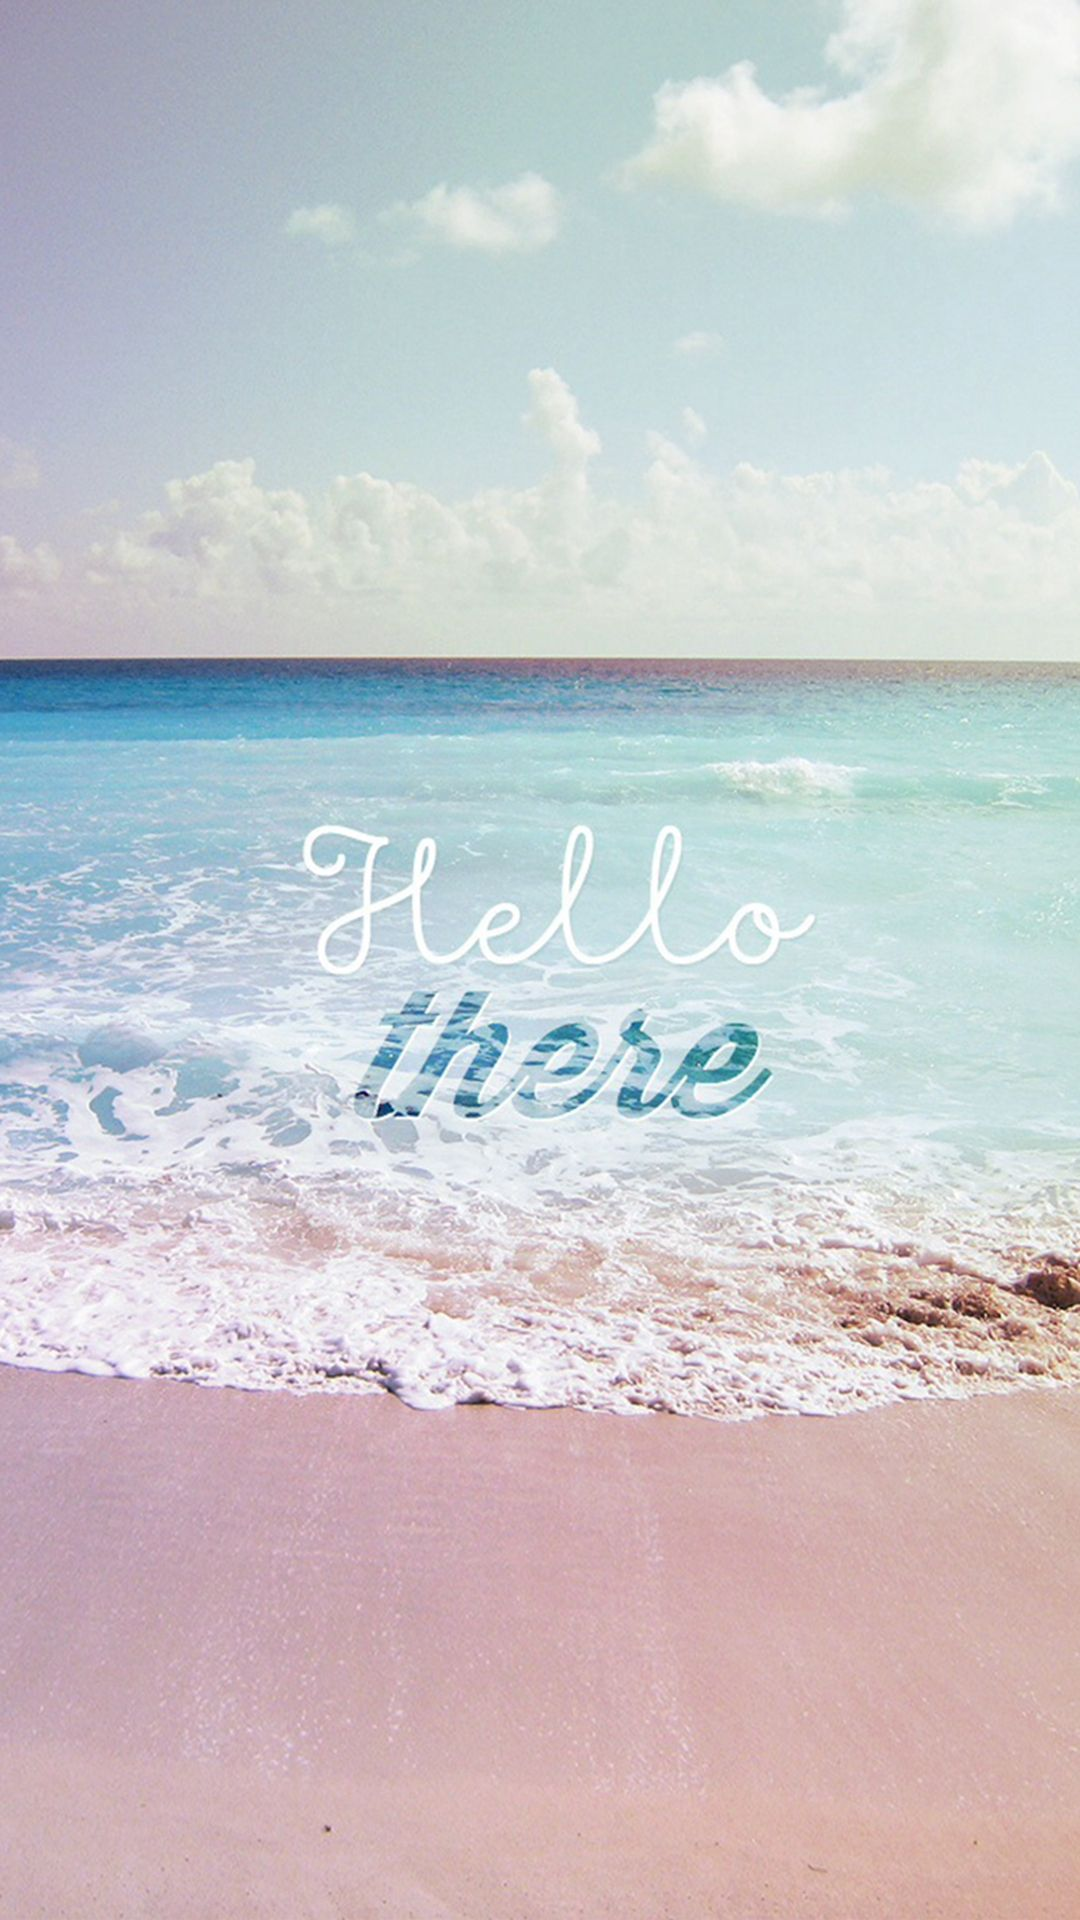 Hello There Summer Wave Beach Iphone 6 Plus Wallpaper Iphone Wallpaper World Cute Tumblr Wallpaper Tumblr Iphone Wallpaper